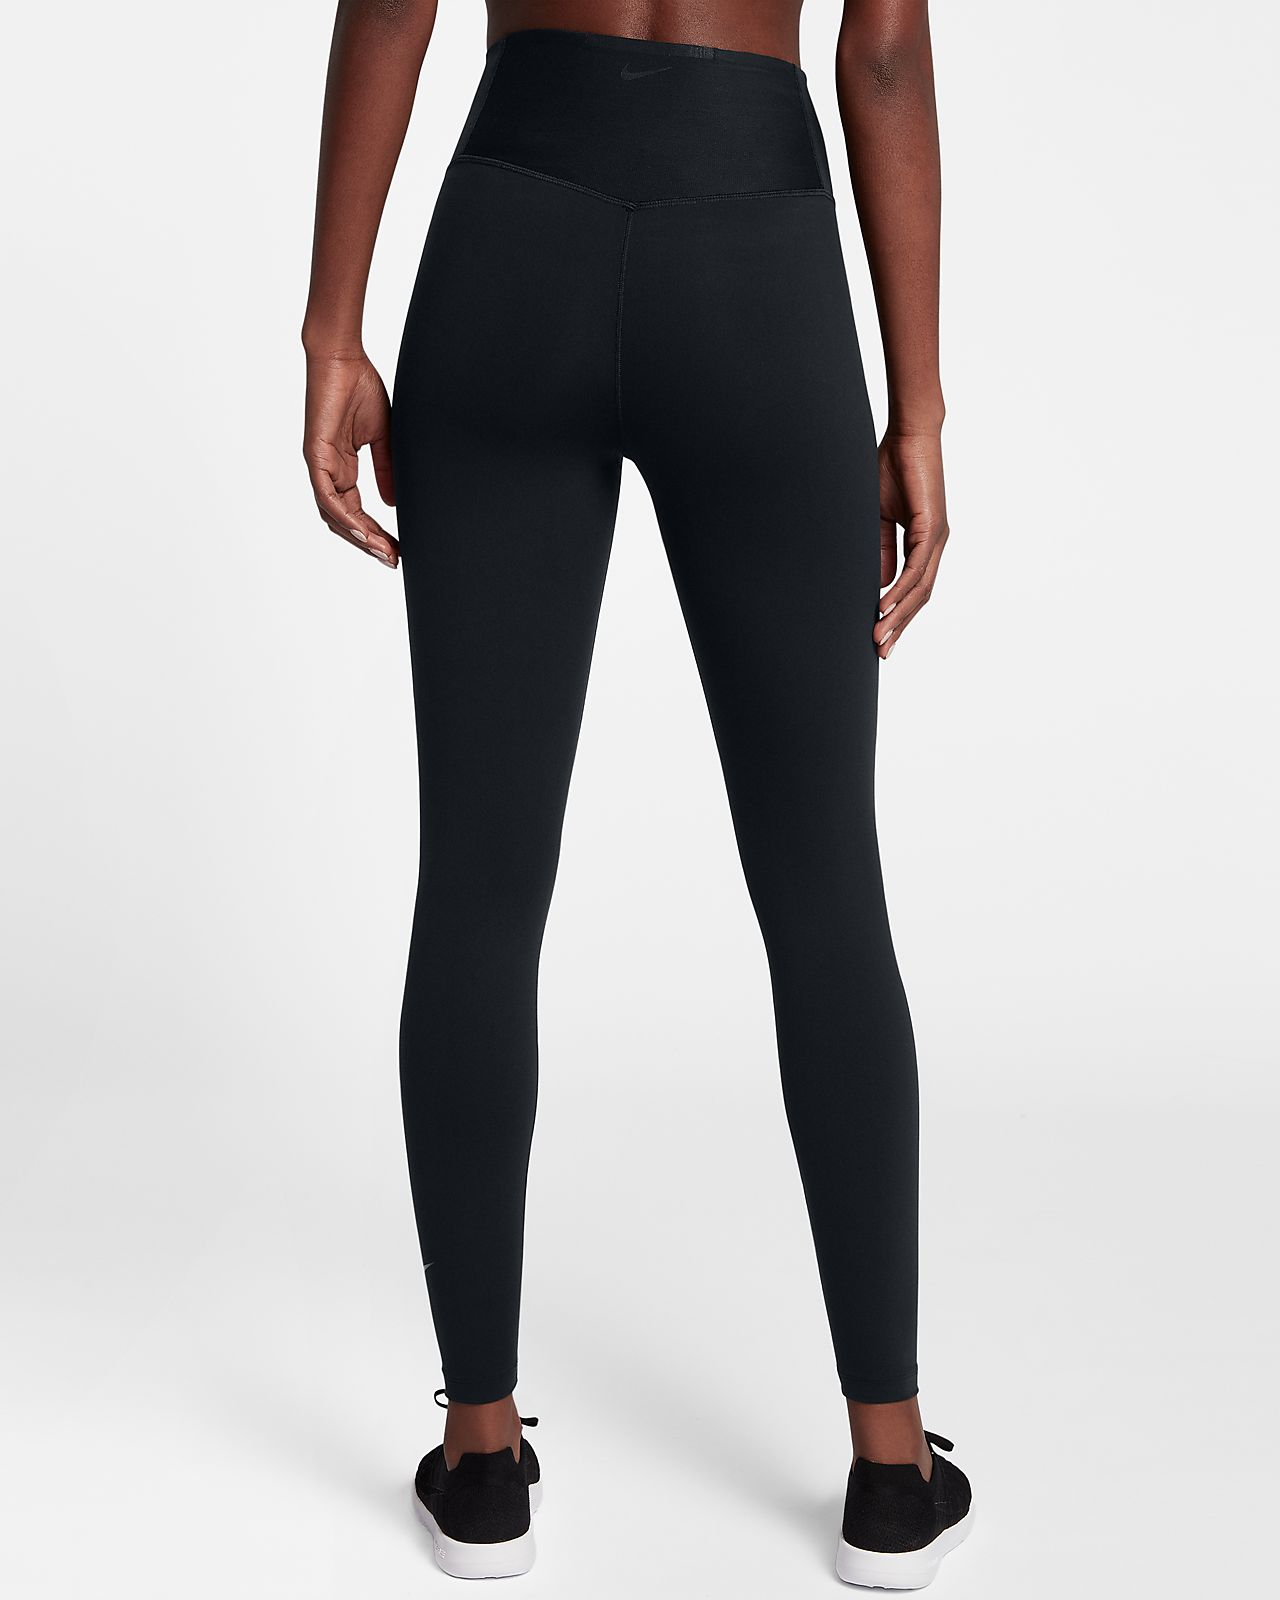 b927861b1da01 Nike Sculpt Lux Women's High-Waist Training Tights. Nike.com NZ